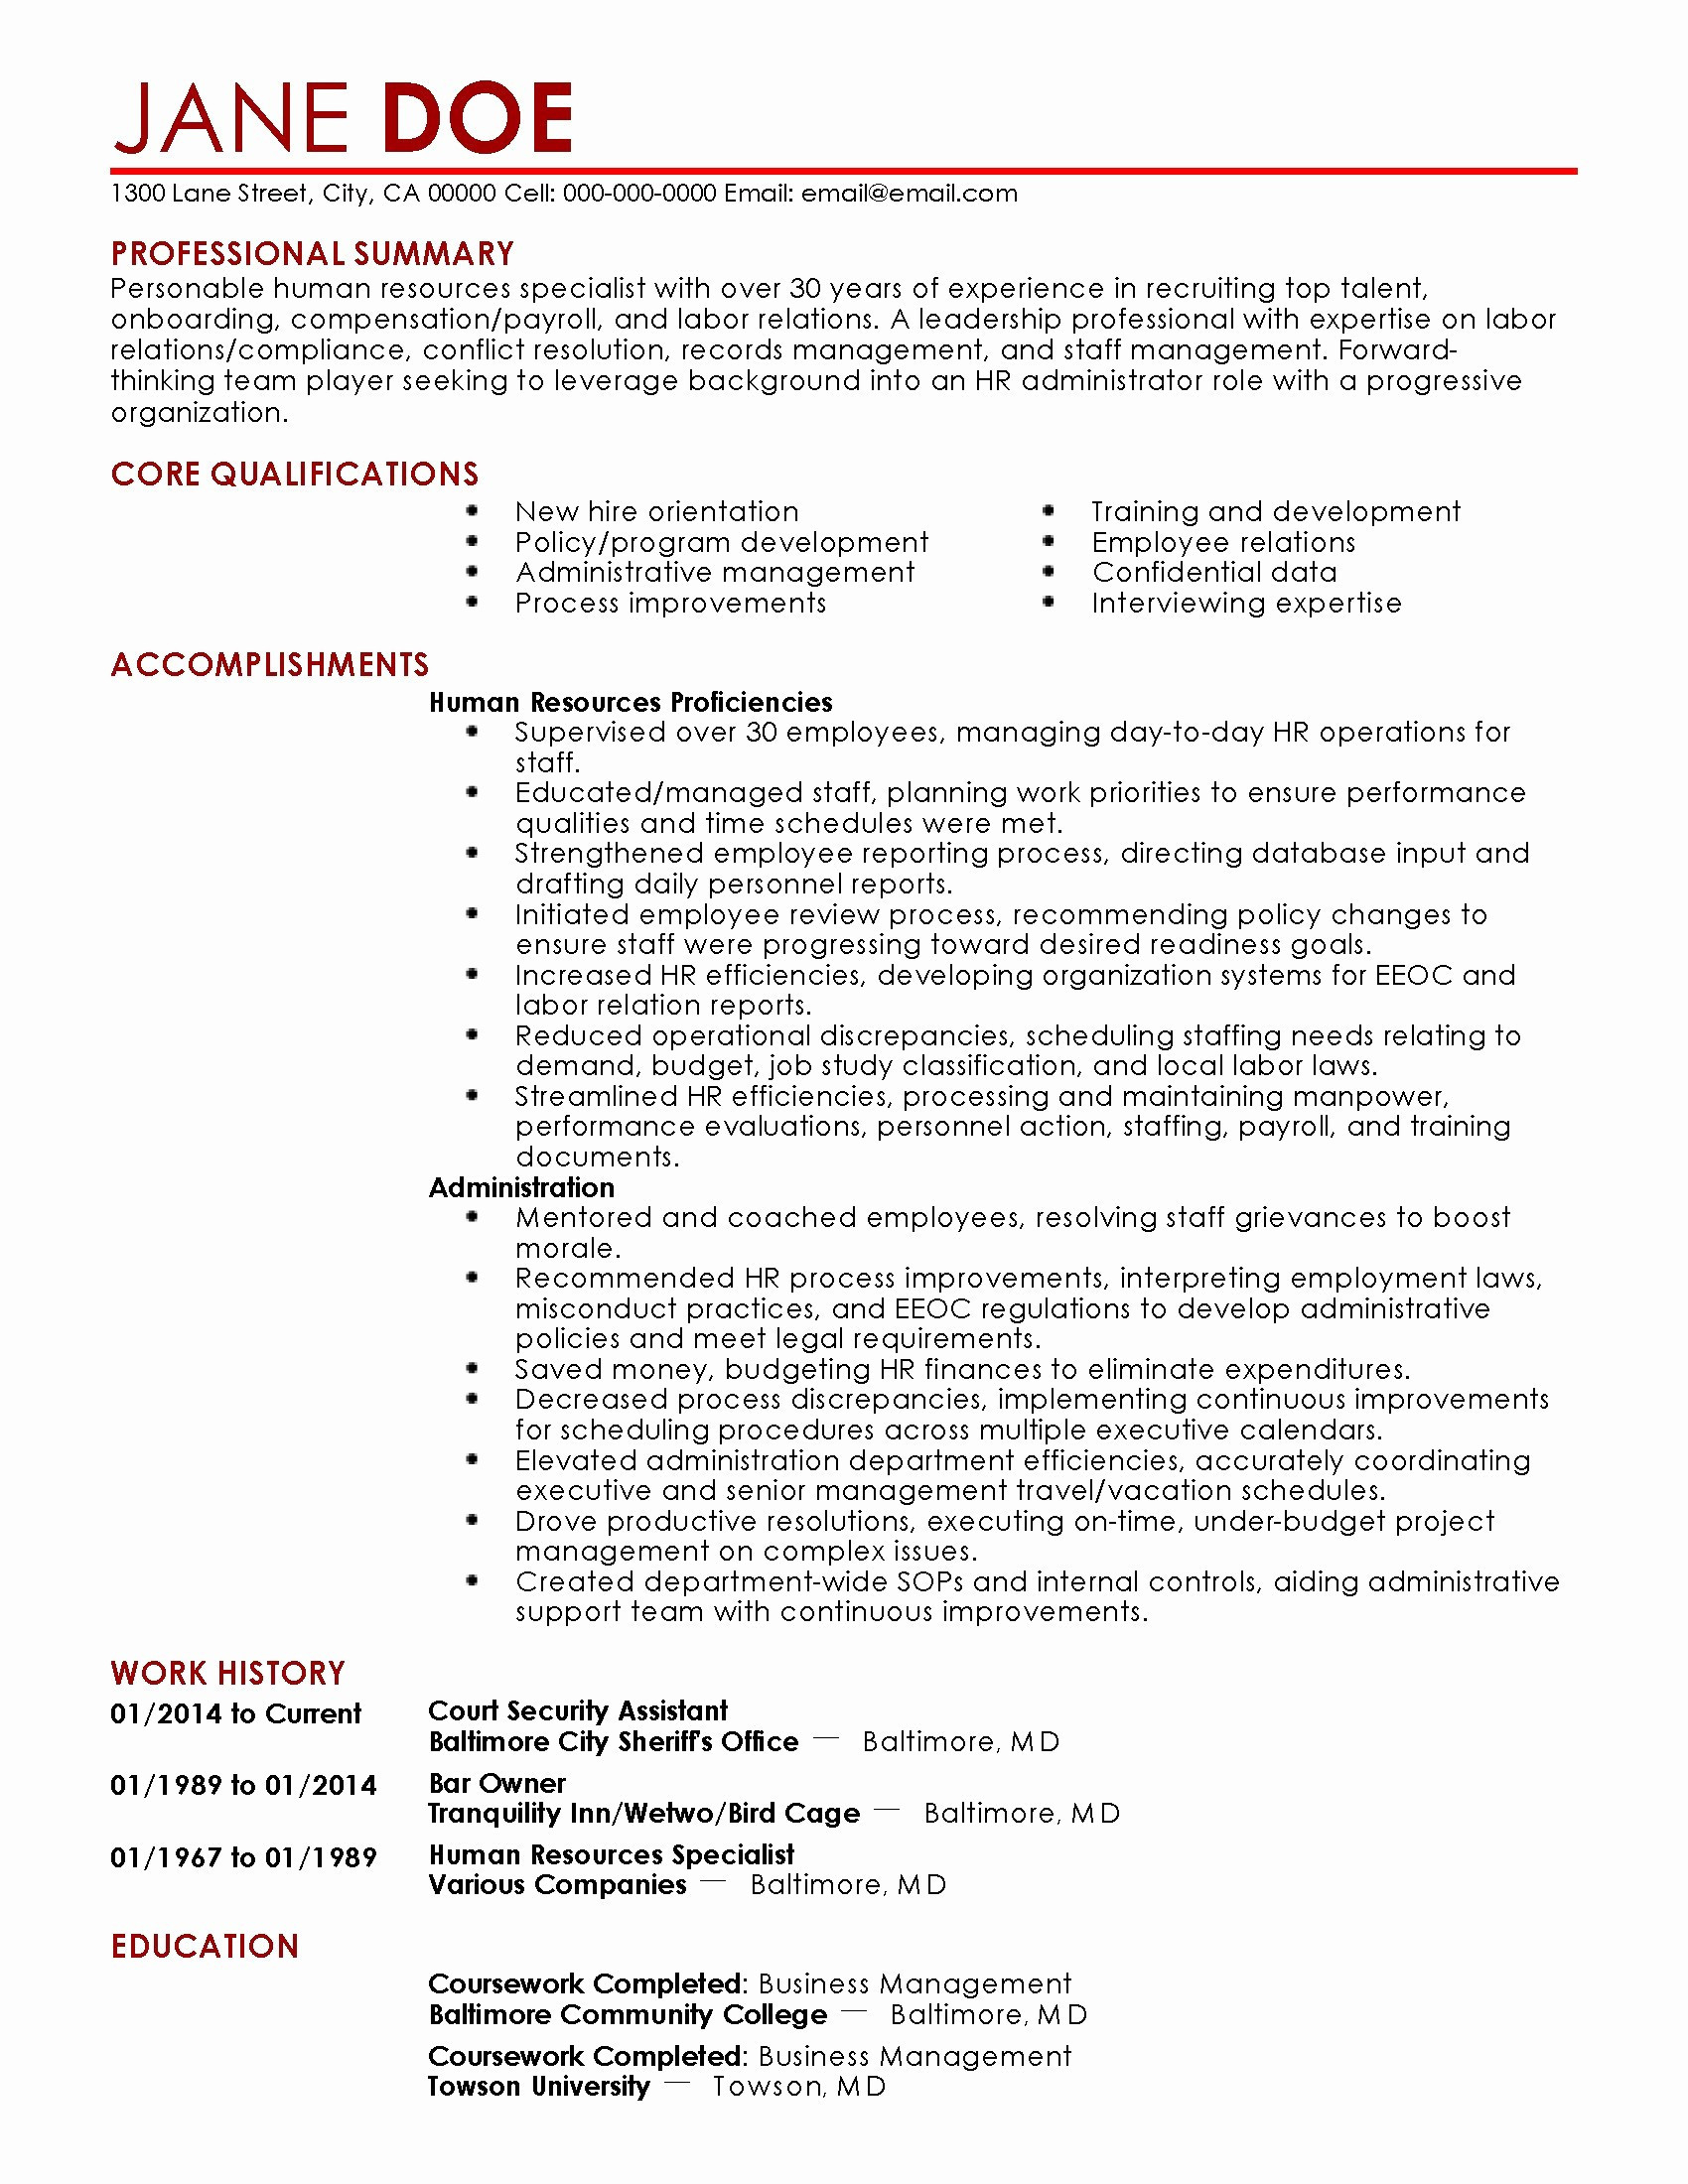 Medical Receptionist Resume Template - Medical Receptionist Resume Sample Book Medical Receptionist